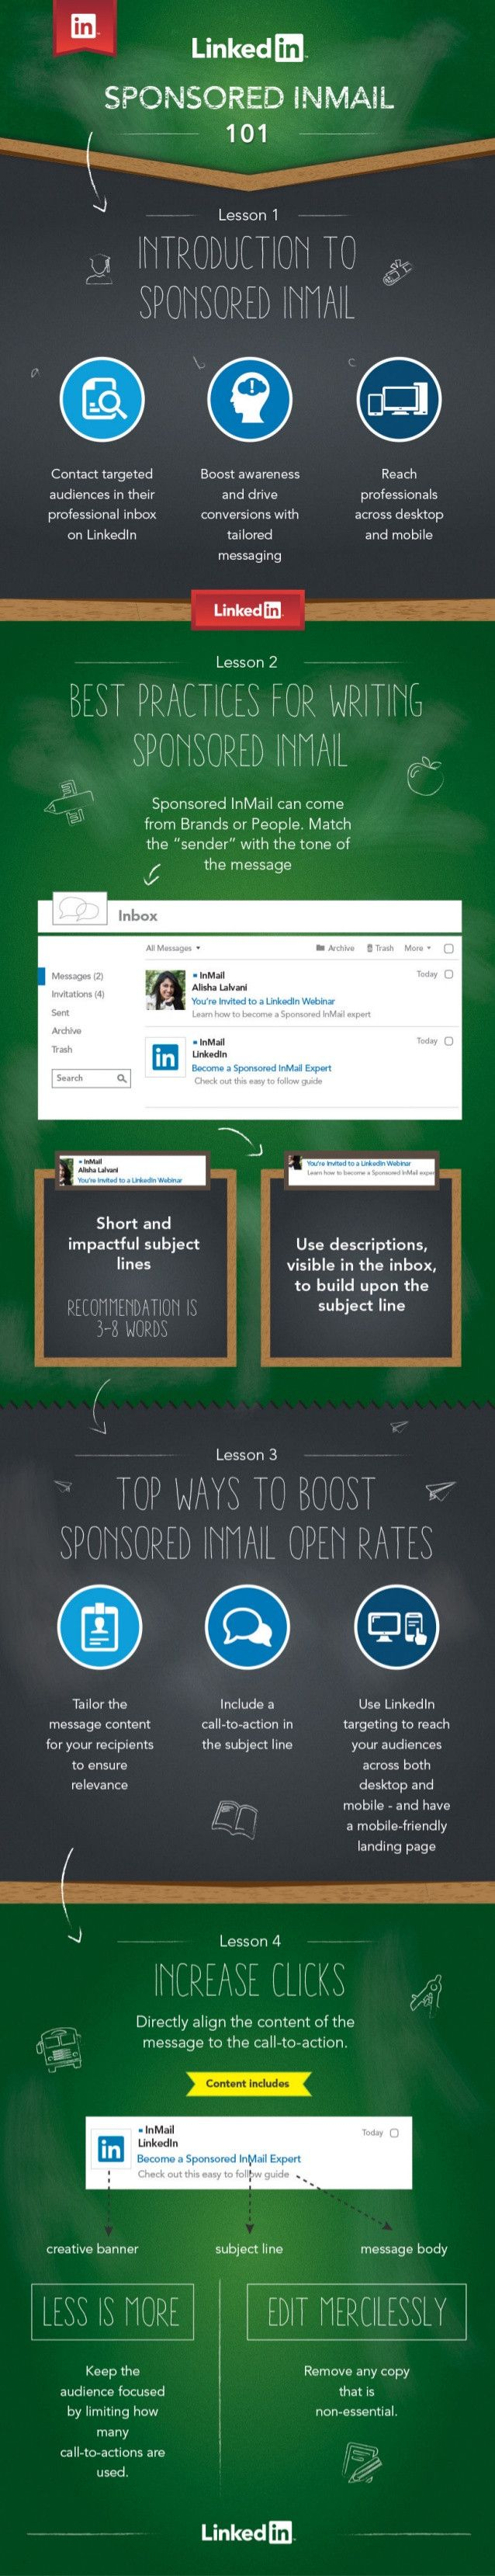 How To Upload Resume On Linkedin 28 Best Linkedin Images On Pinterest  Job Search Content And Blog